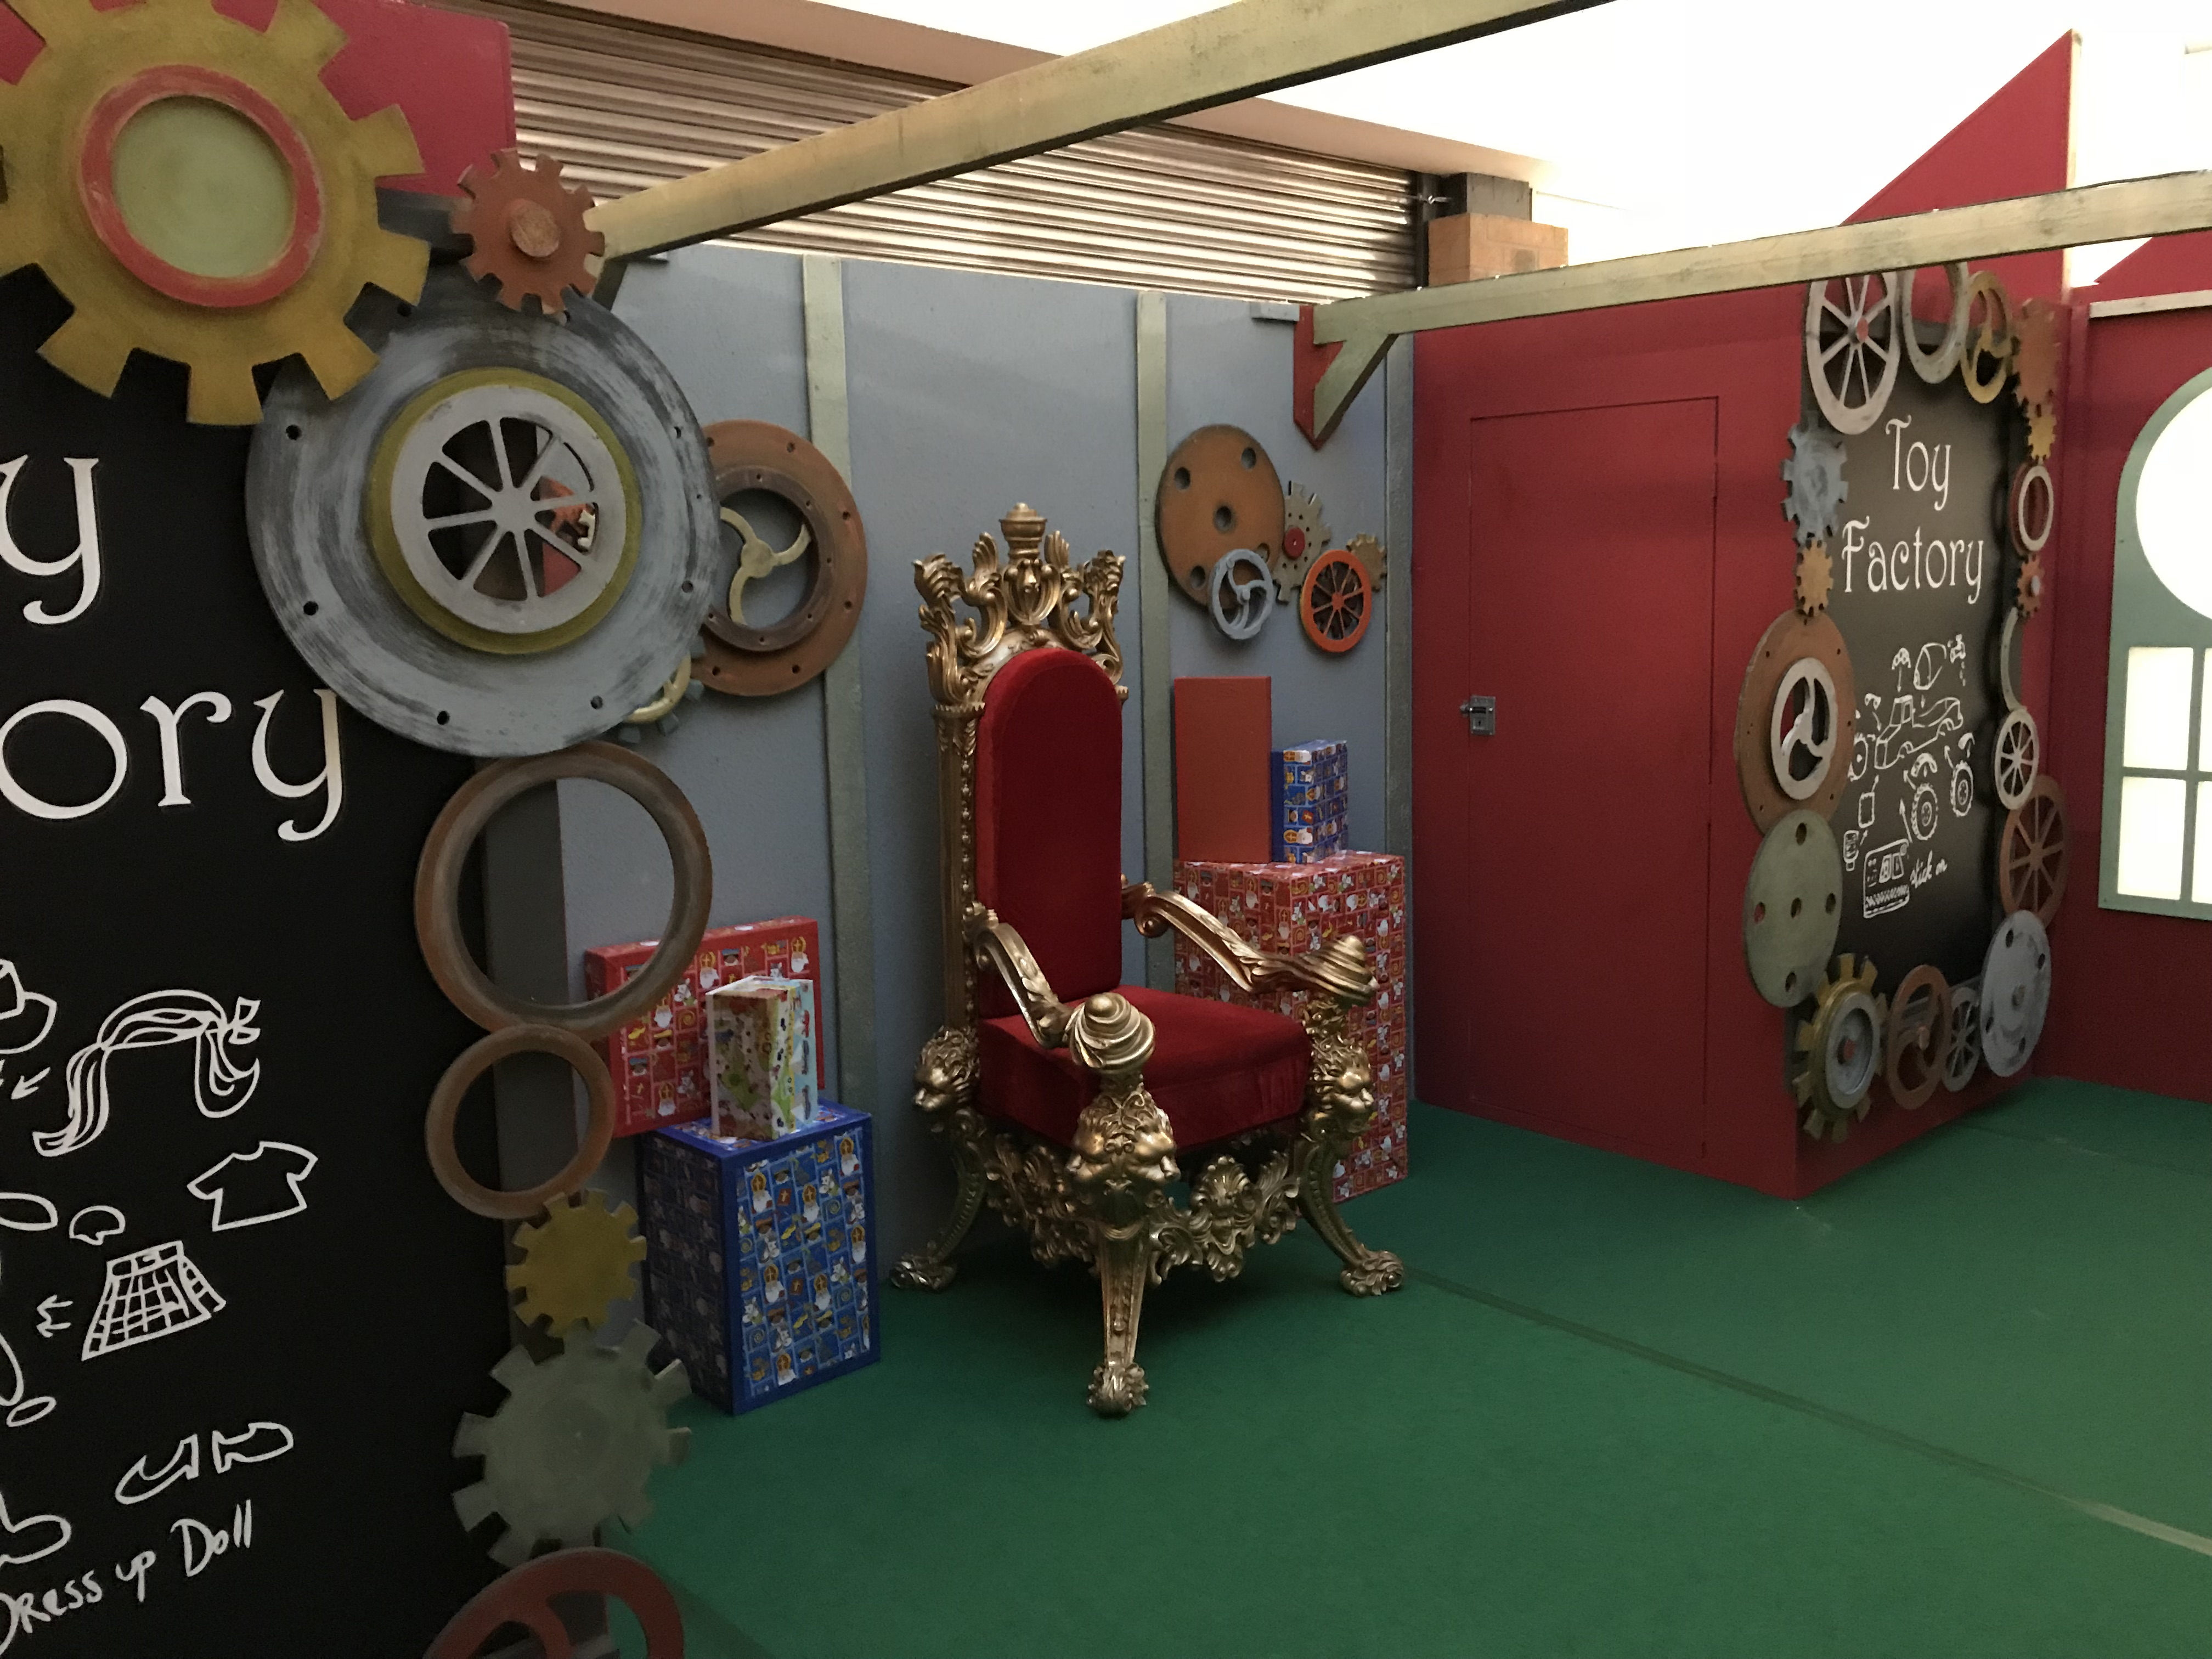 Decor of the toy factory